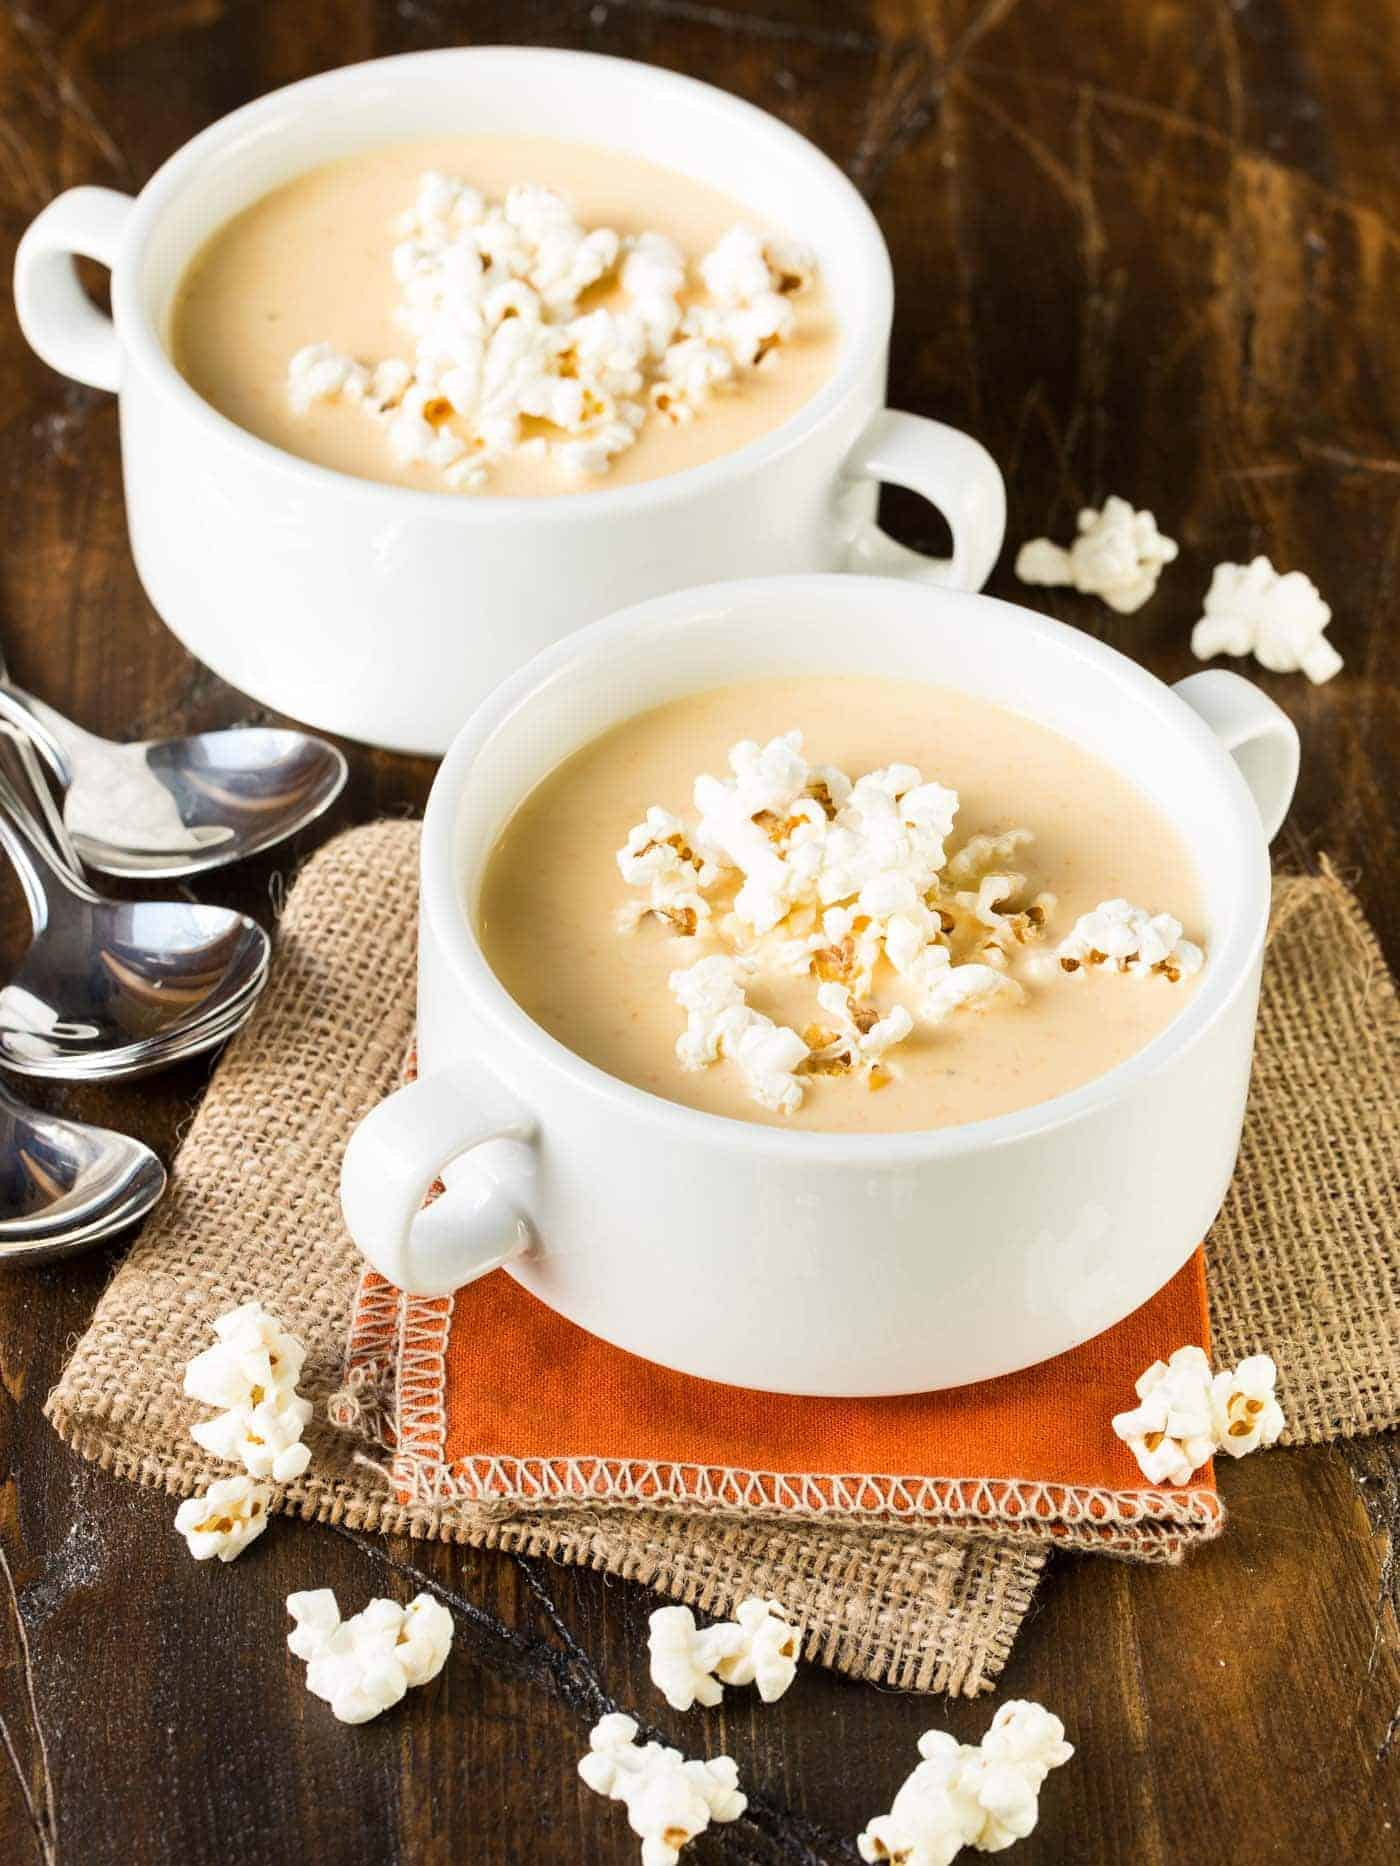 Smooth, silky and full of cheddar cheese, this easy Beer Cheese Soup is your new go-to recipe!